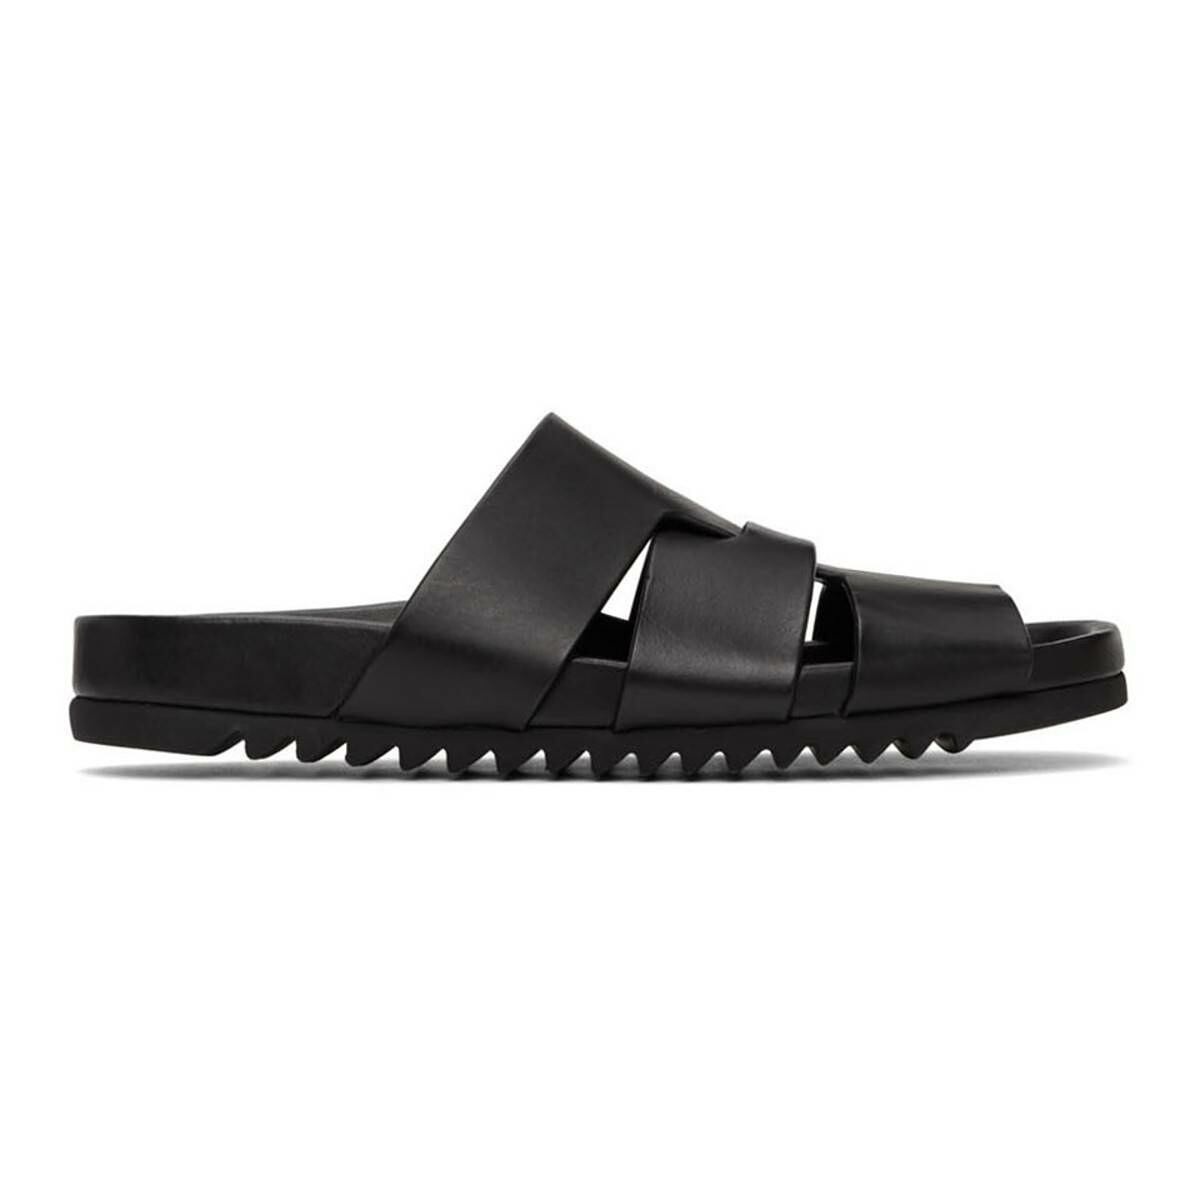 Rick Owens Black Lazarus Sandals Ssense USA MEN Men SHOES Mens SANDALS